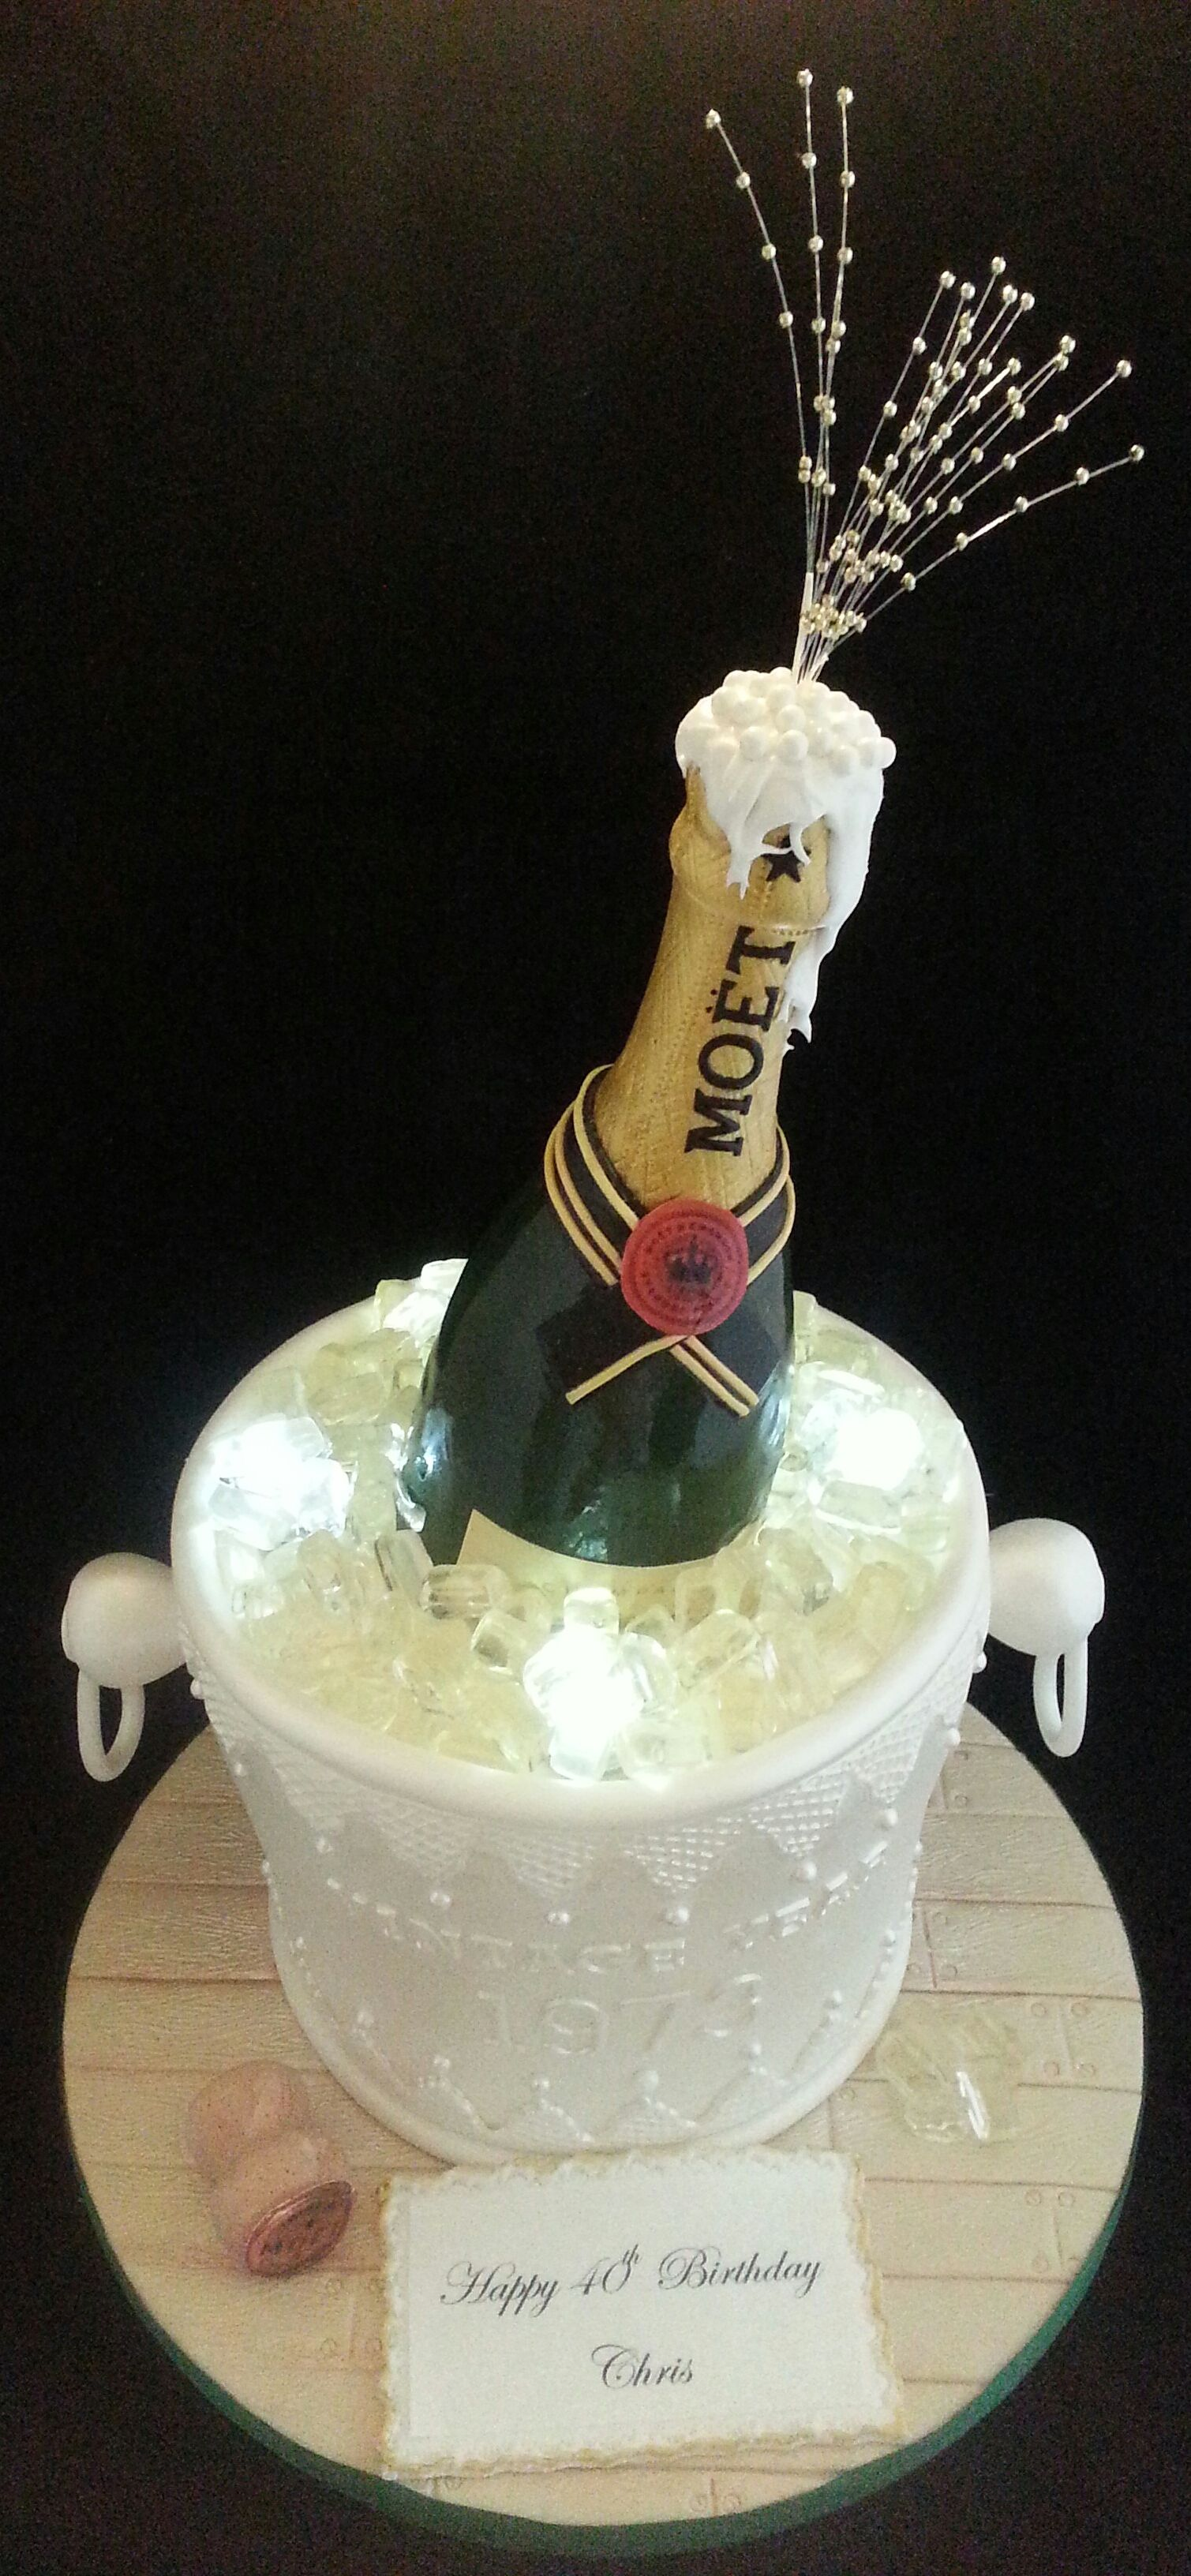 Champaign Ice Bucket Cake